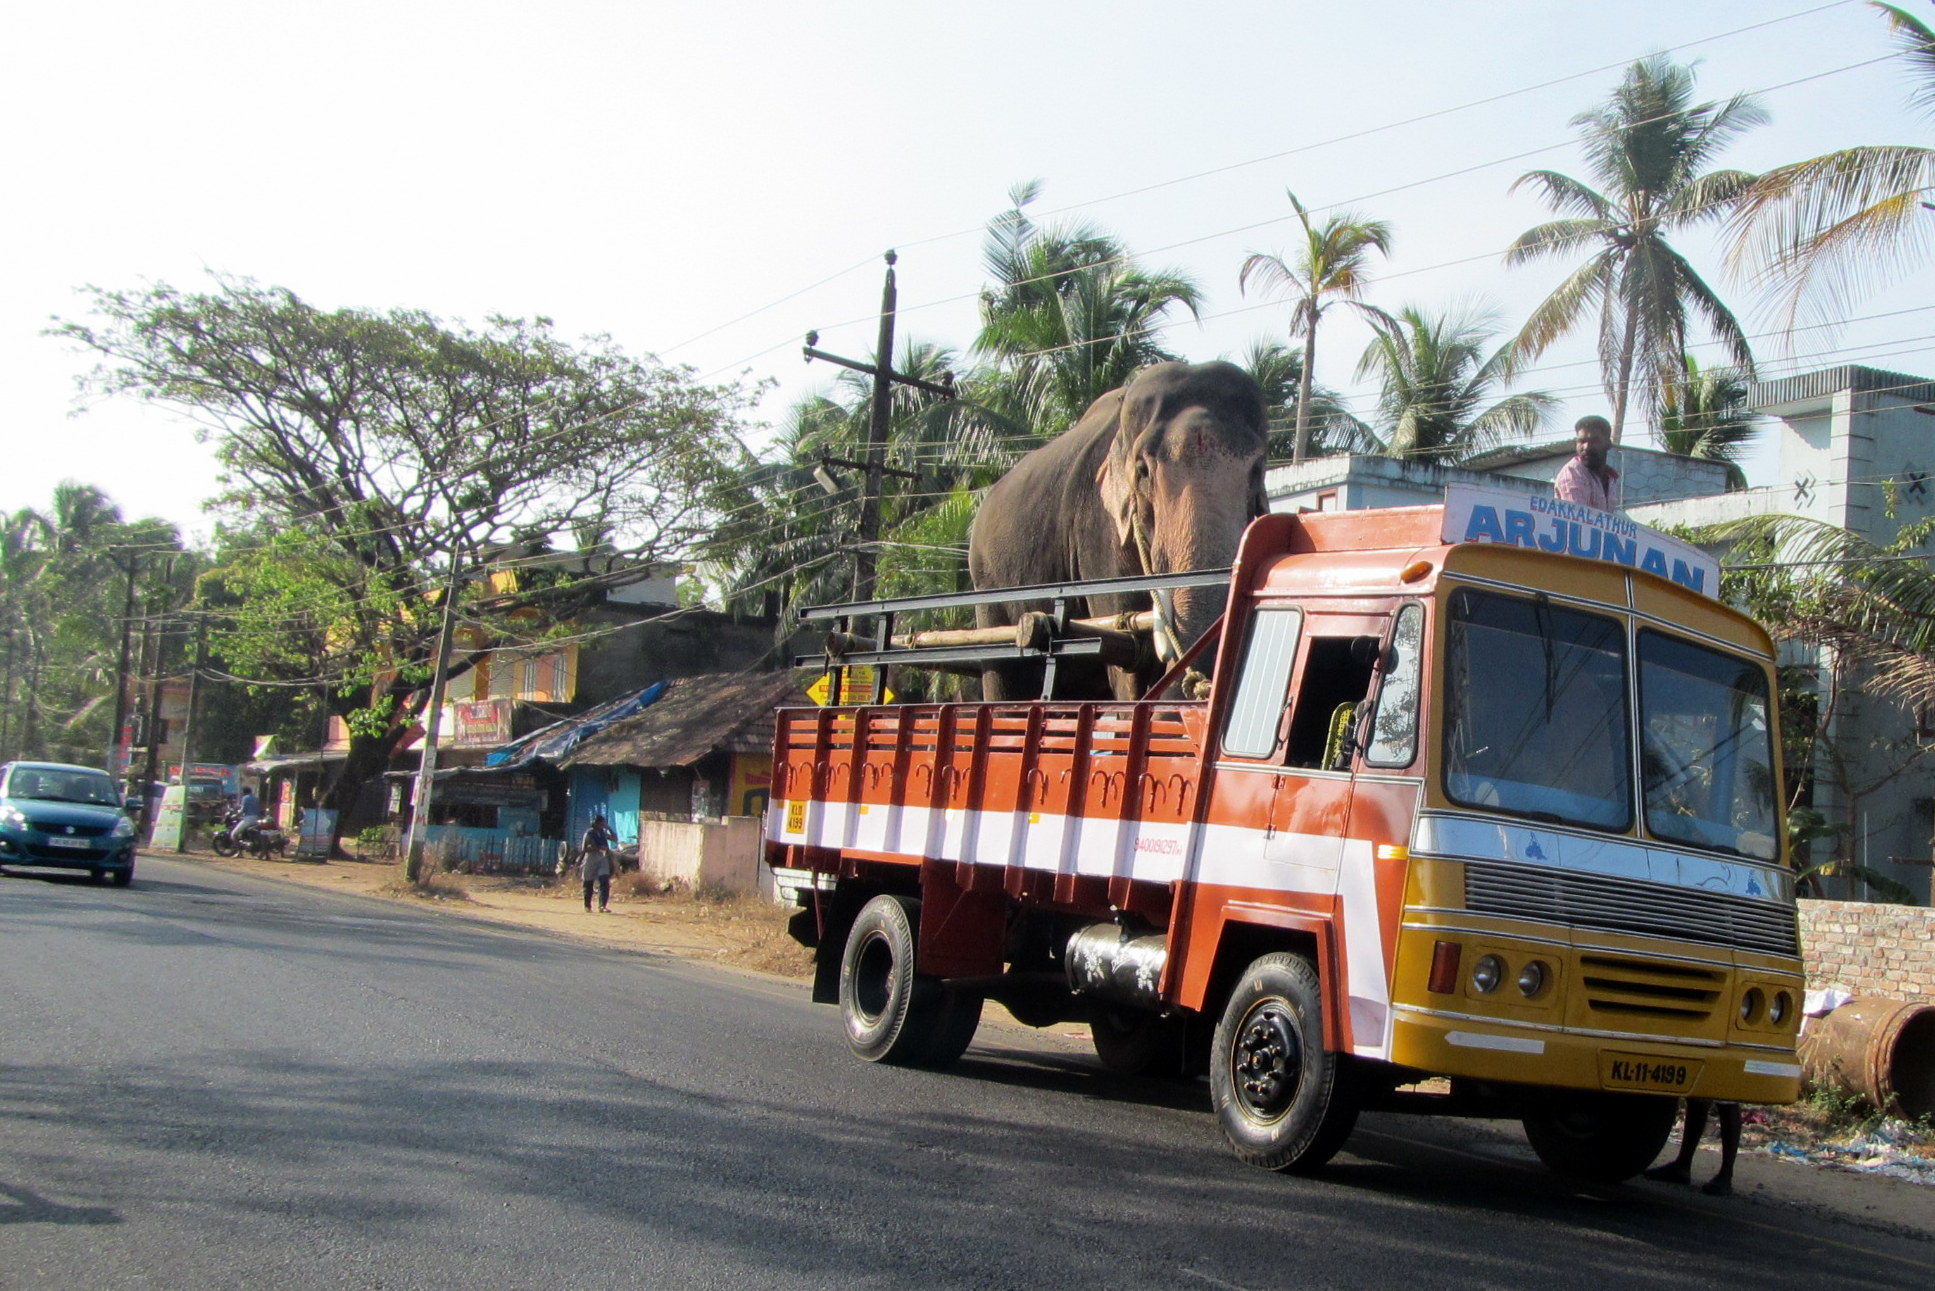 Elephant in a truck, India - What Is India Like?